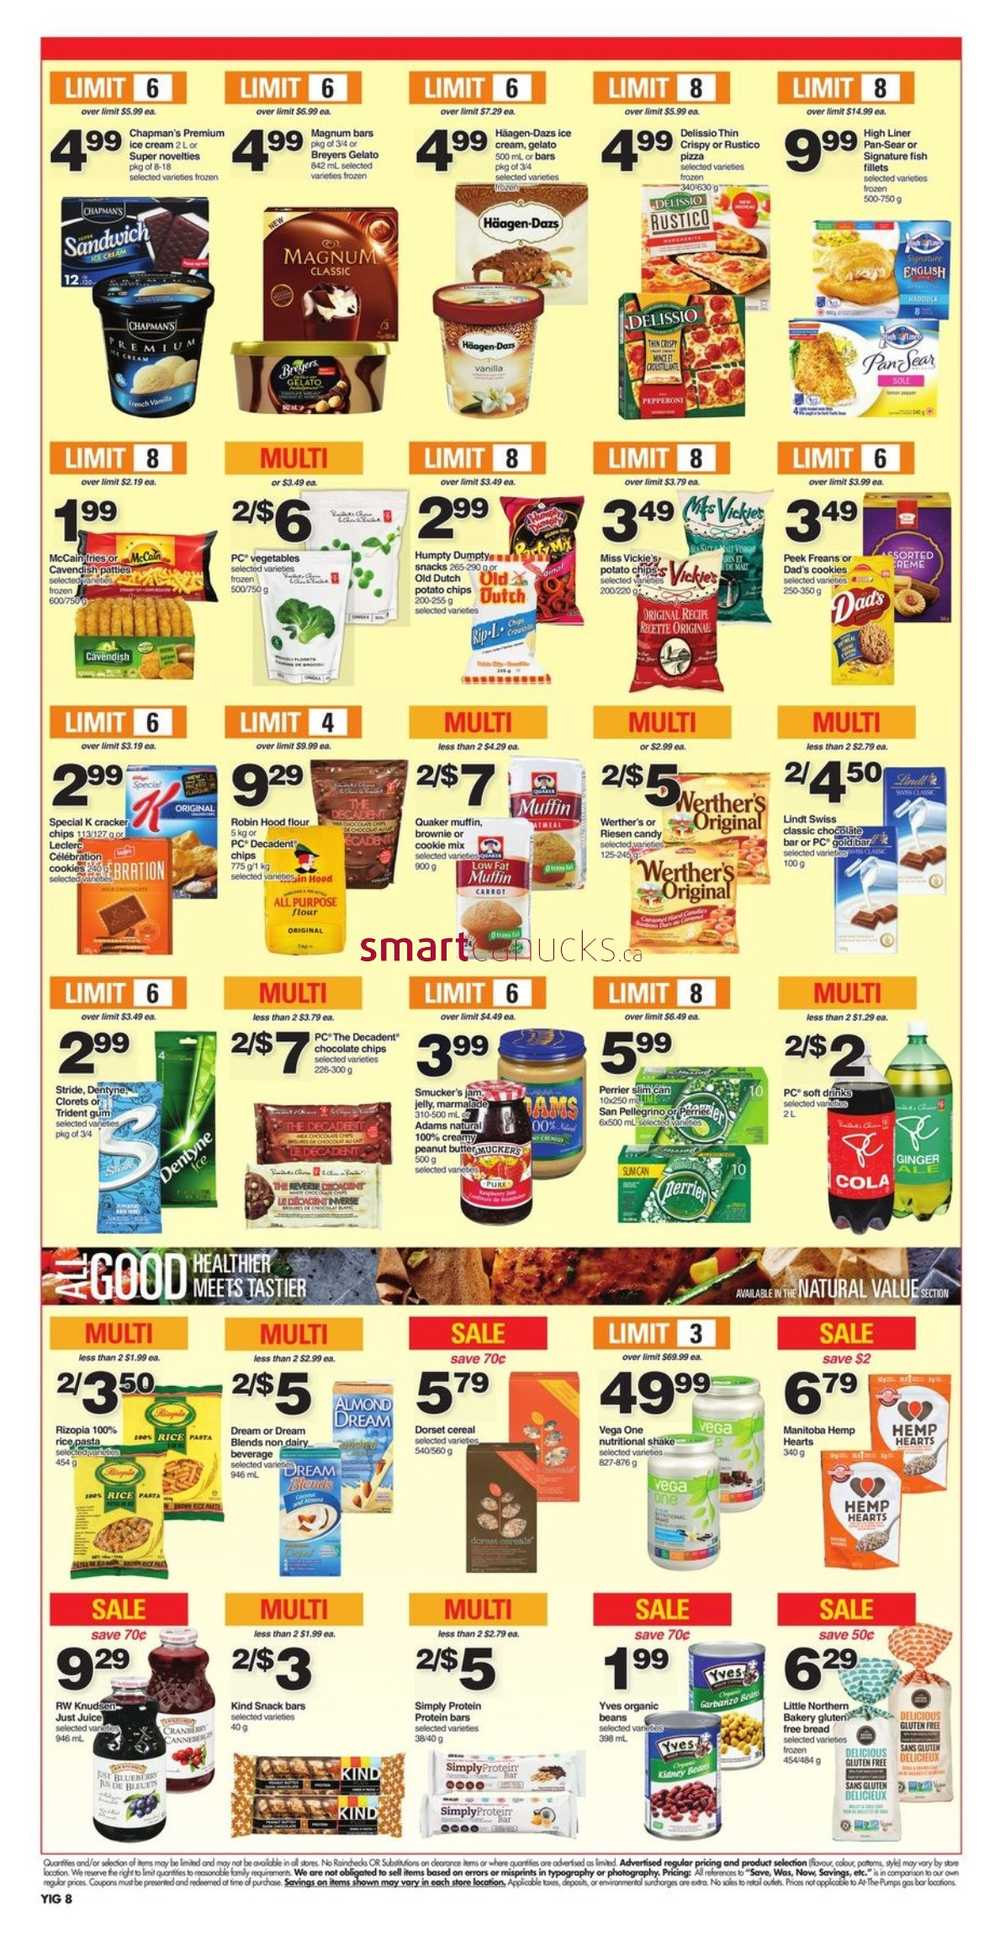 City Market Digital Coupons - unbywindow.tk FREE Get Deal Listing coupon codes websites about city market digital unbywindow.tk and use it immediately to get coupon codes, promo codes, discount codes. Actived: Saturday Nov 17,